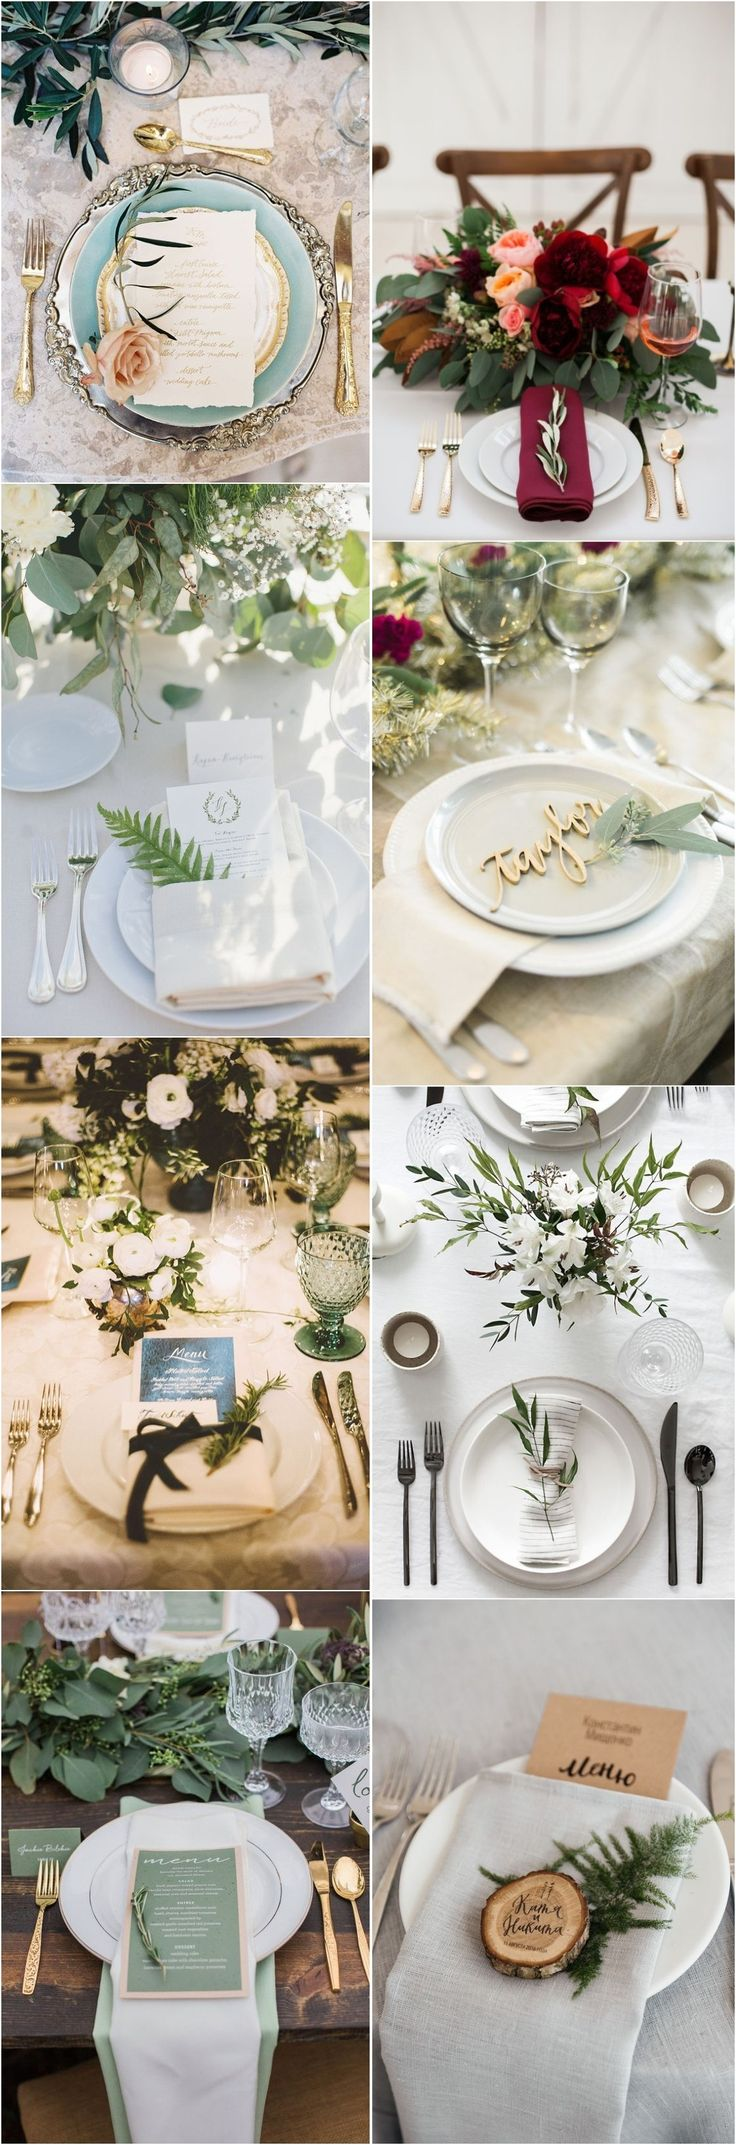 Best 25 place setting ideas on pinterest place settings for Wedding place settings ideas